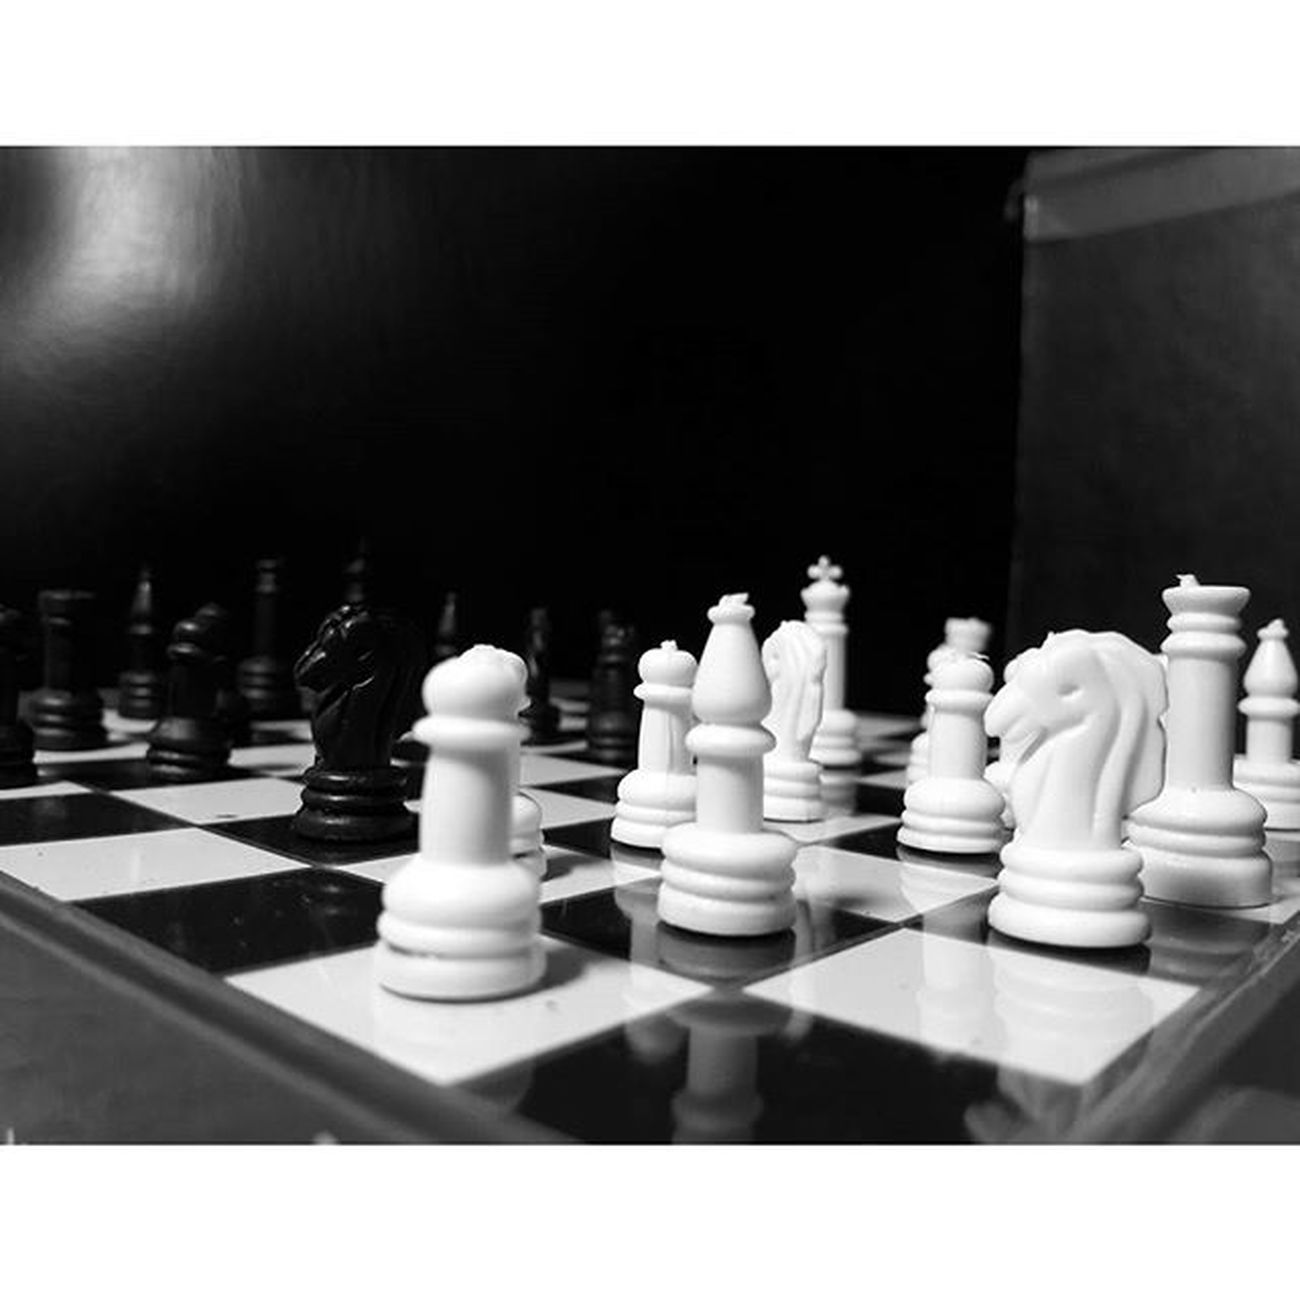 -Life is like a game,changing with each move. Instamood Instapic Photography Blackandwhite Chess Snapspeed Igersmauritius